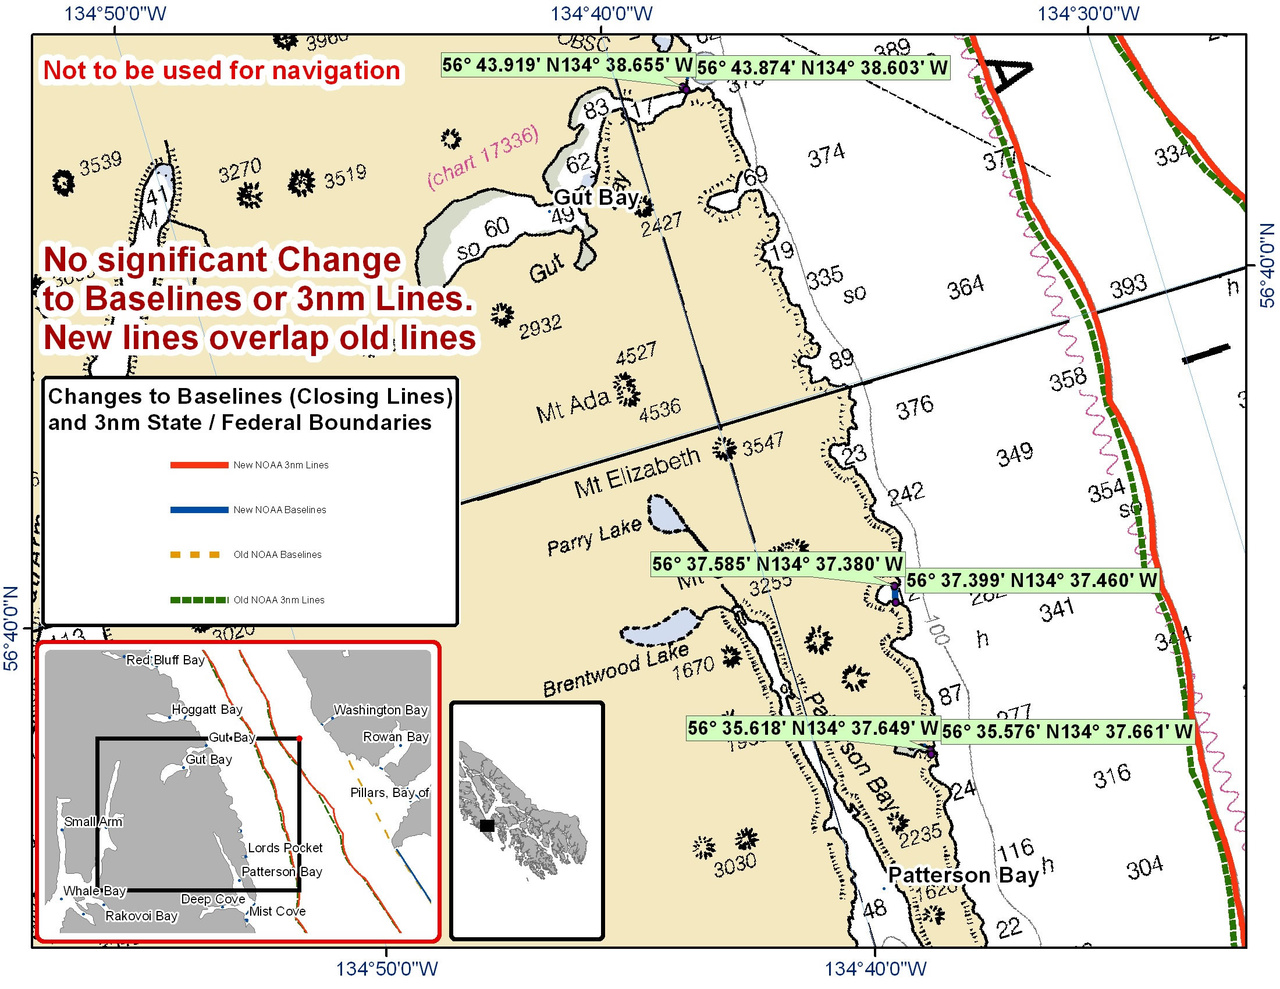 Chart for Gut Bay and the Surrounding Area